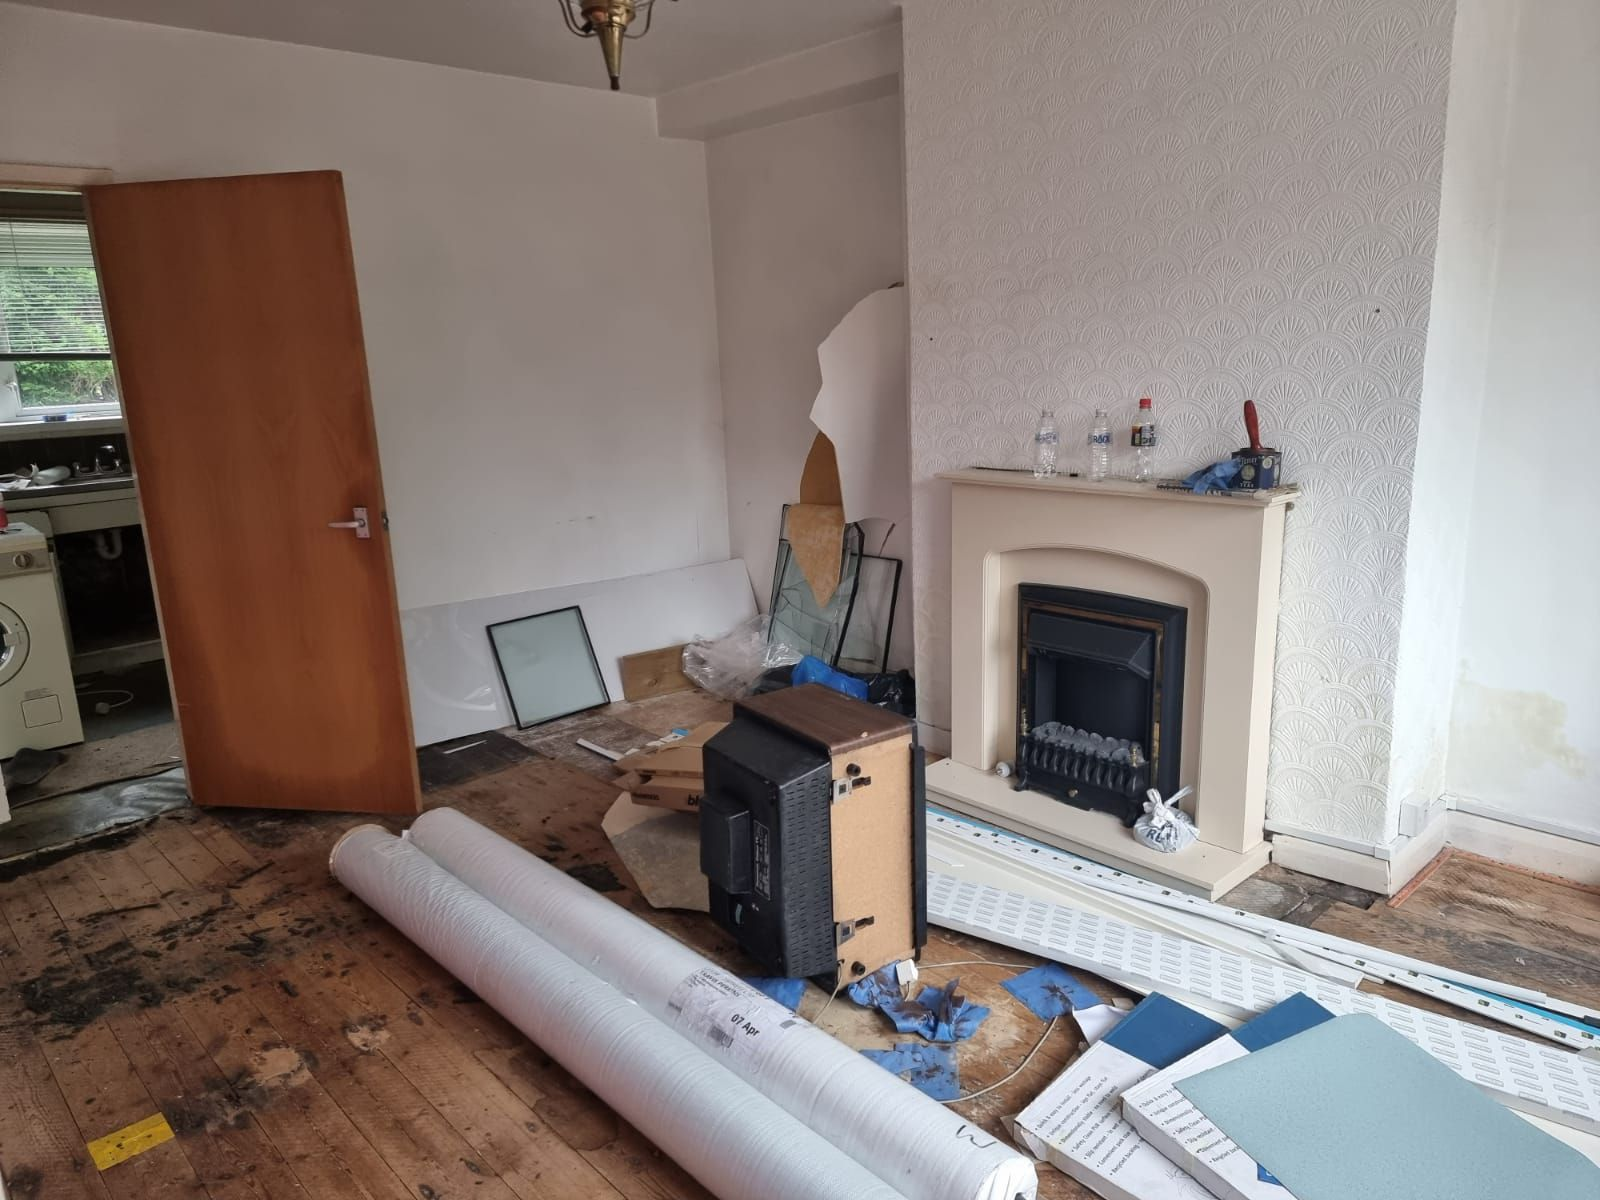 2 bedroom town house For Sale in Leicester - Photograph 3.